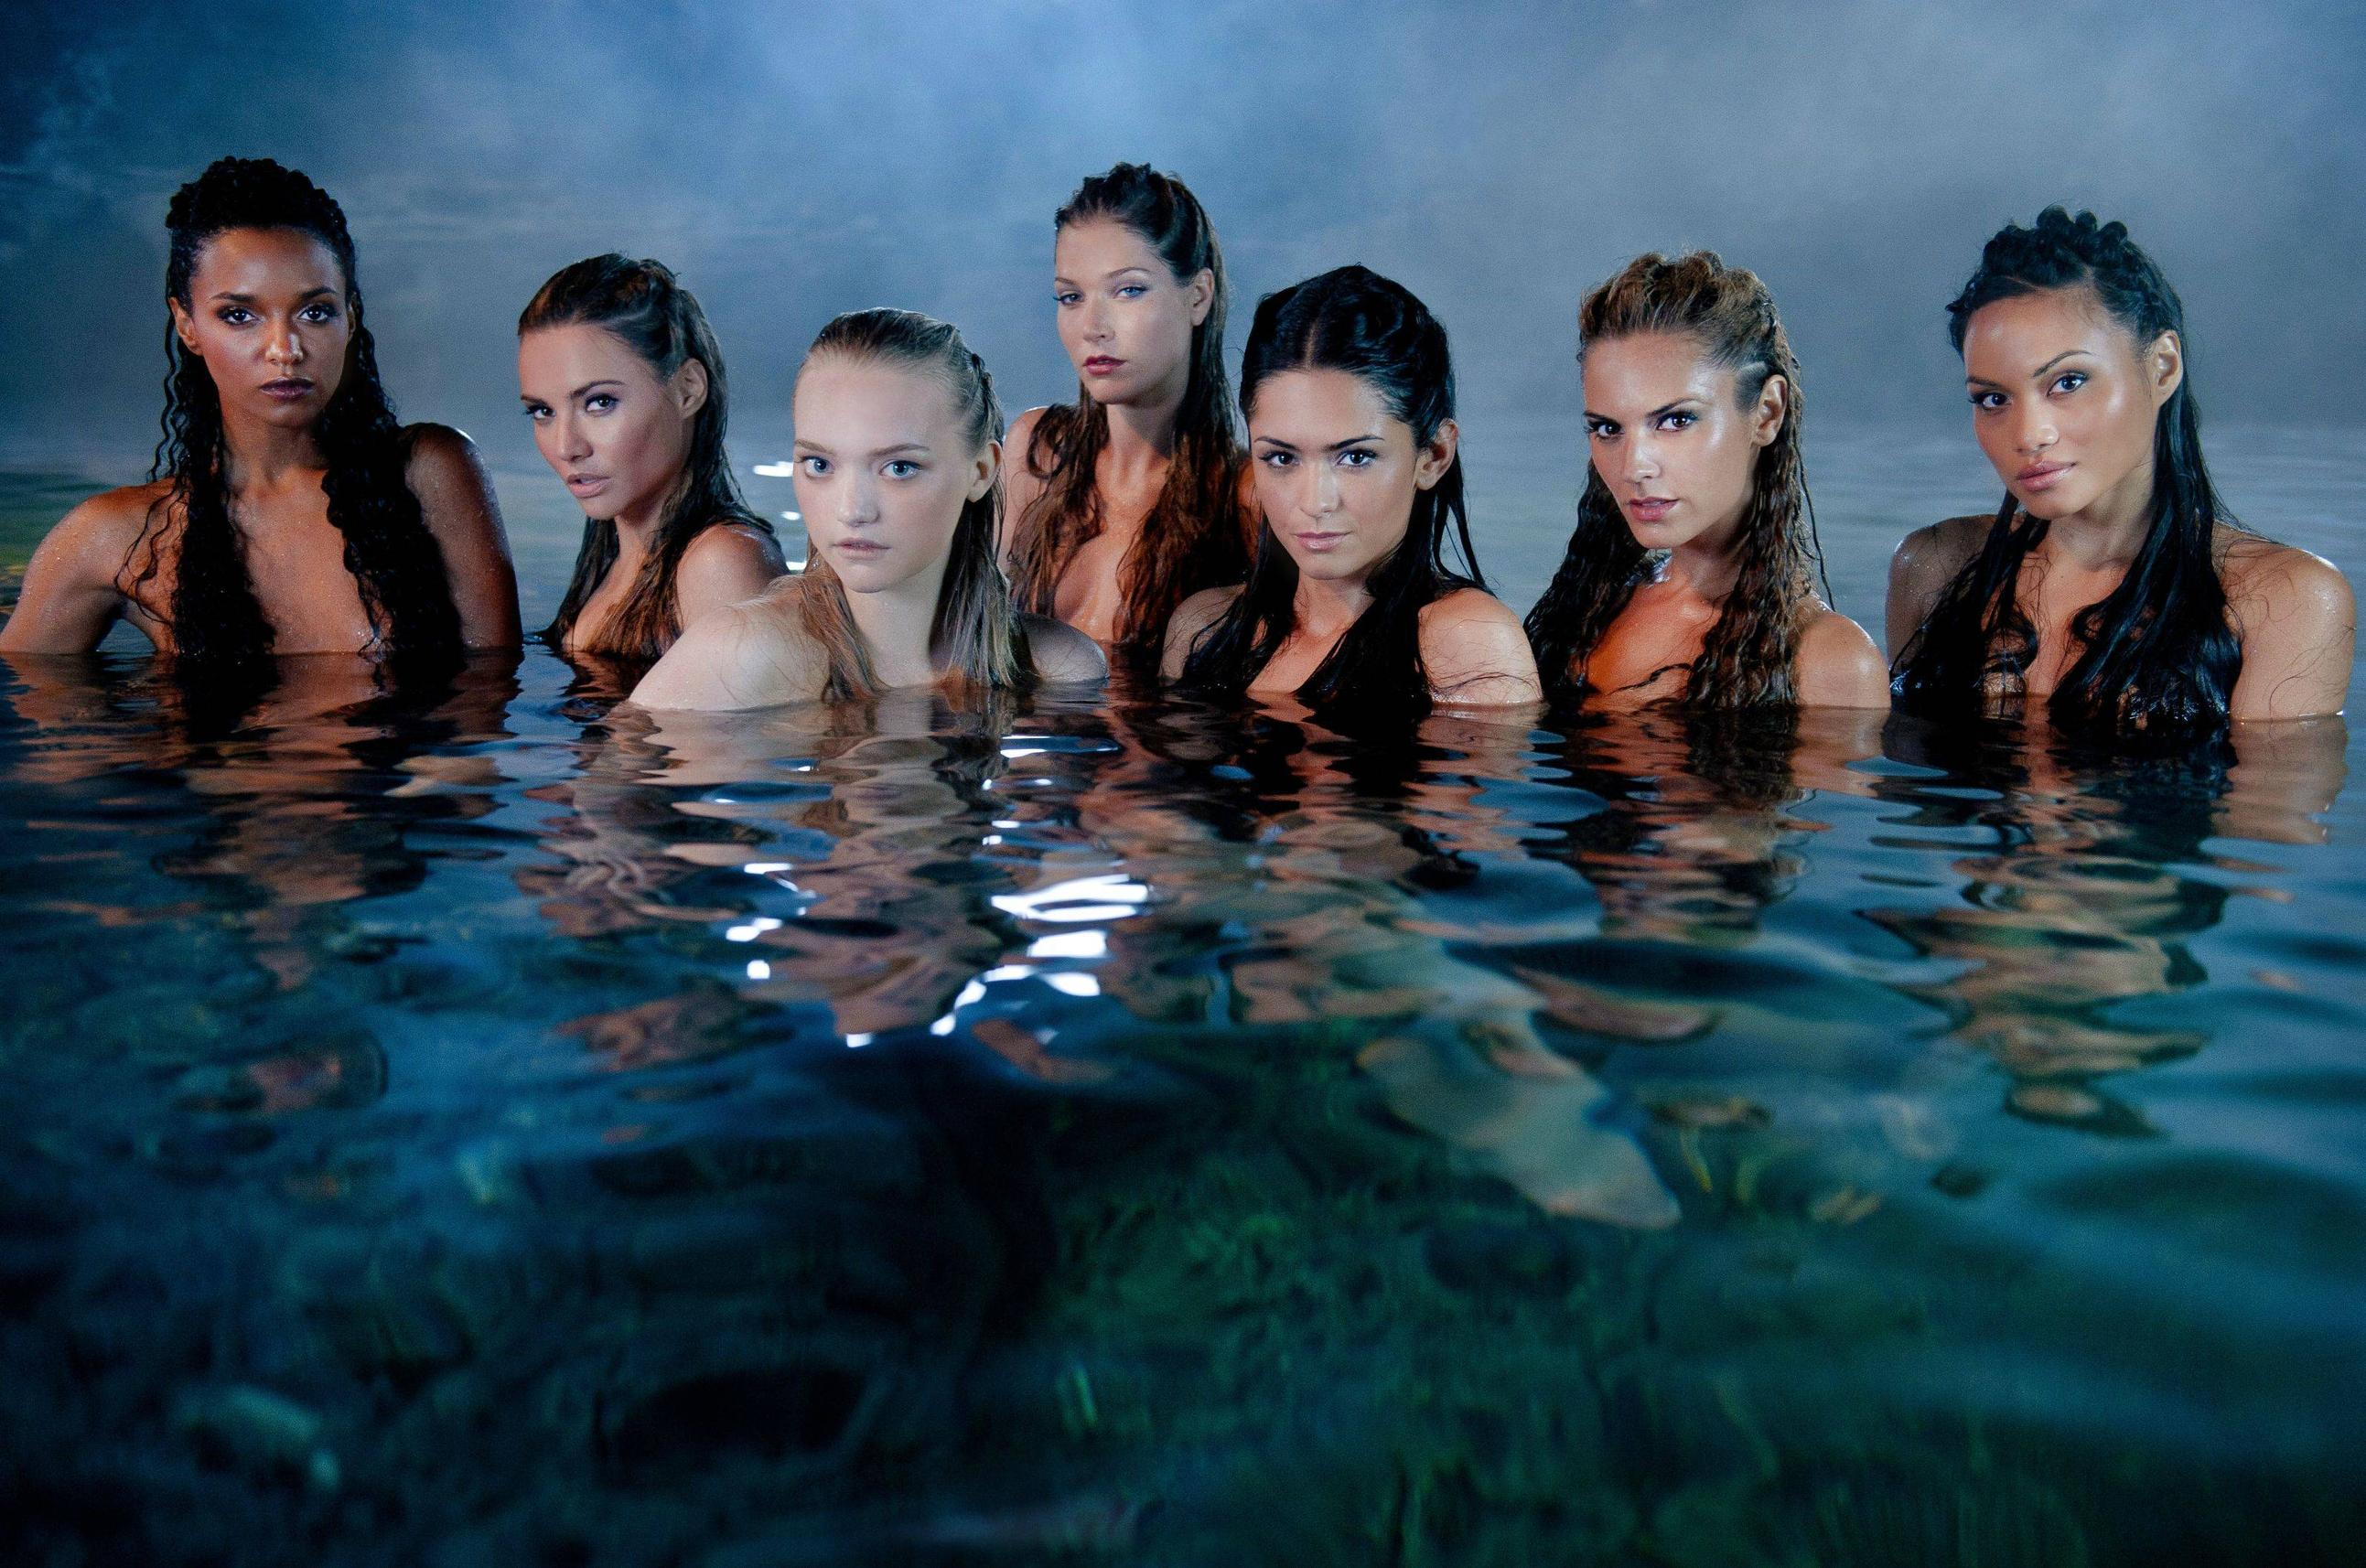 Naked babes posing in the water